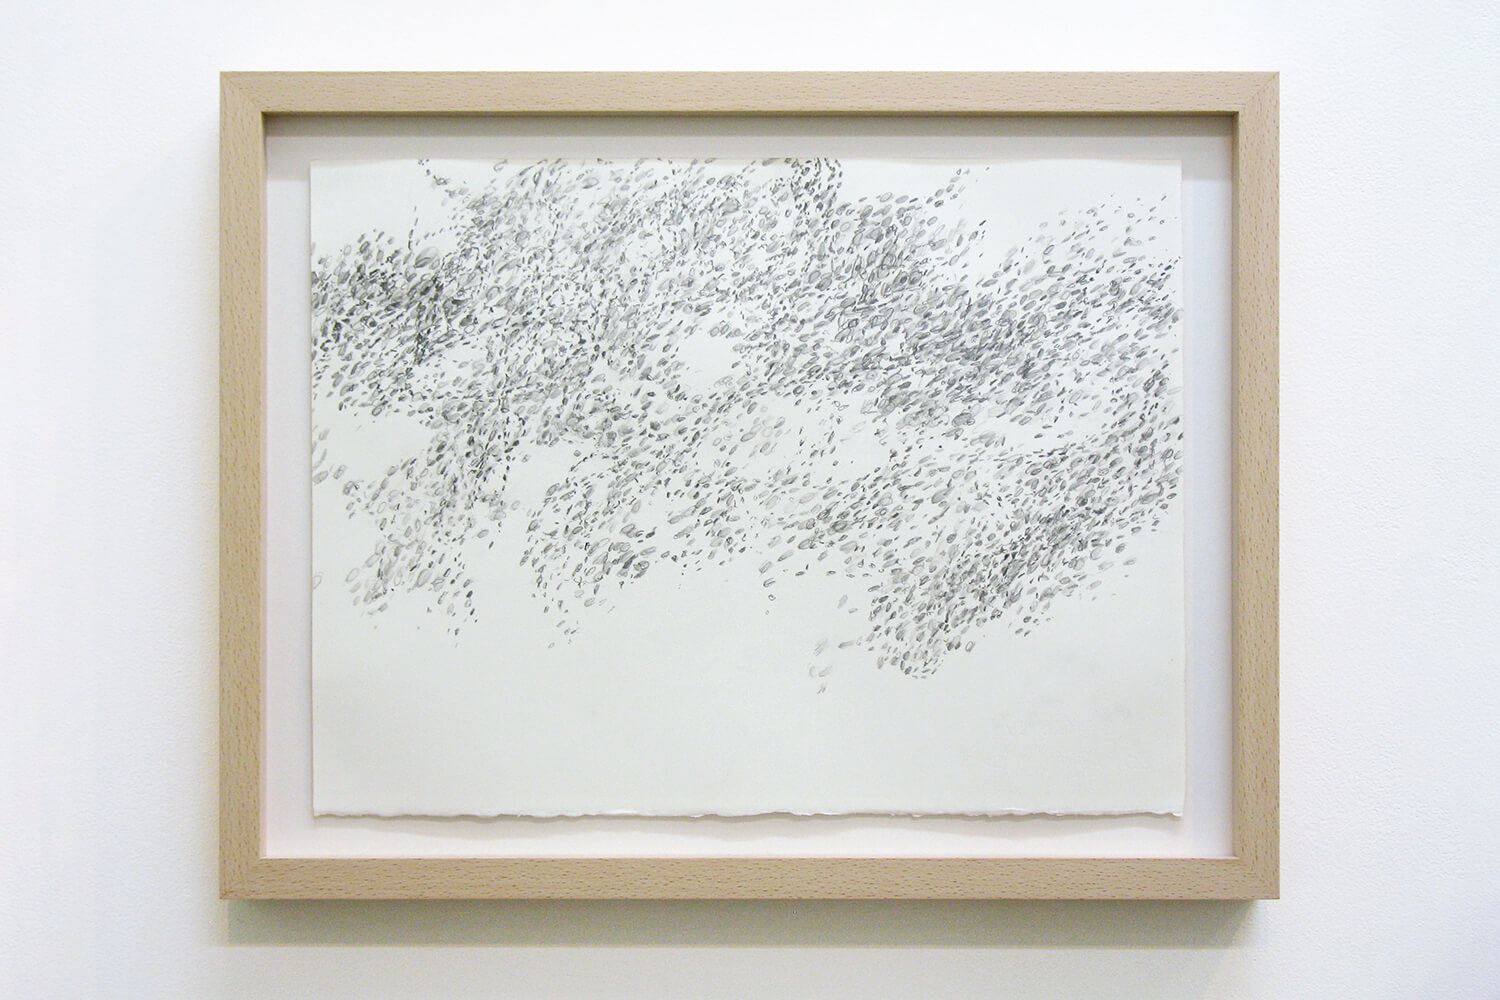 When the Dust Settles (d11)<br>Pencil on paper, 28.5 x 38 cm, 2011